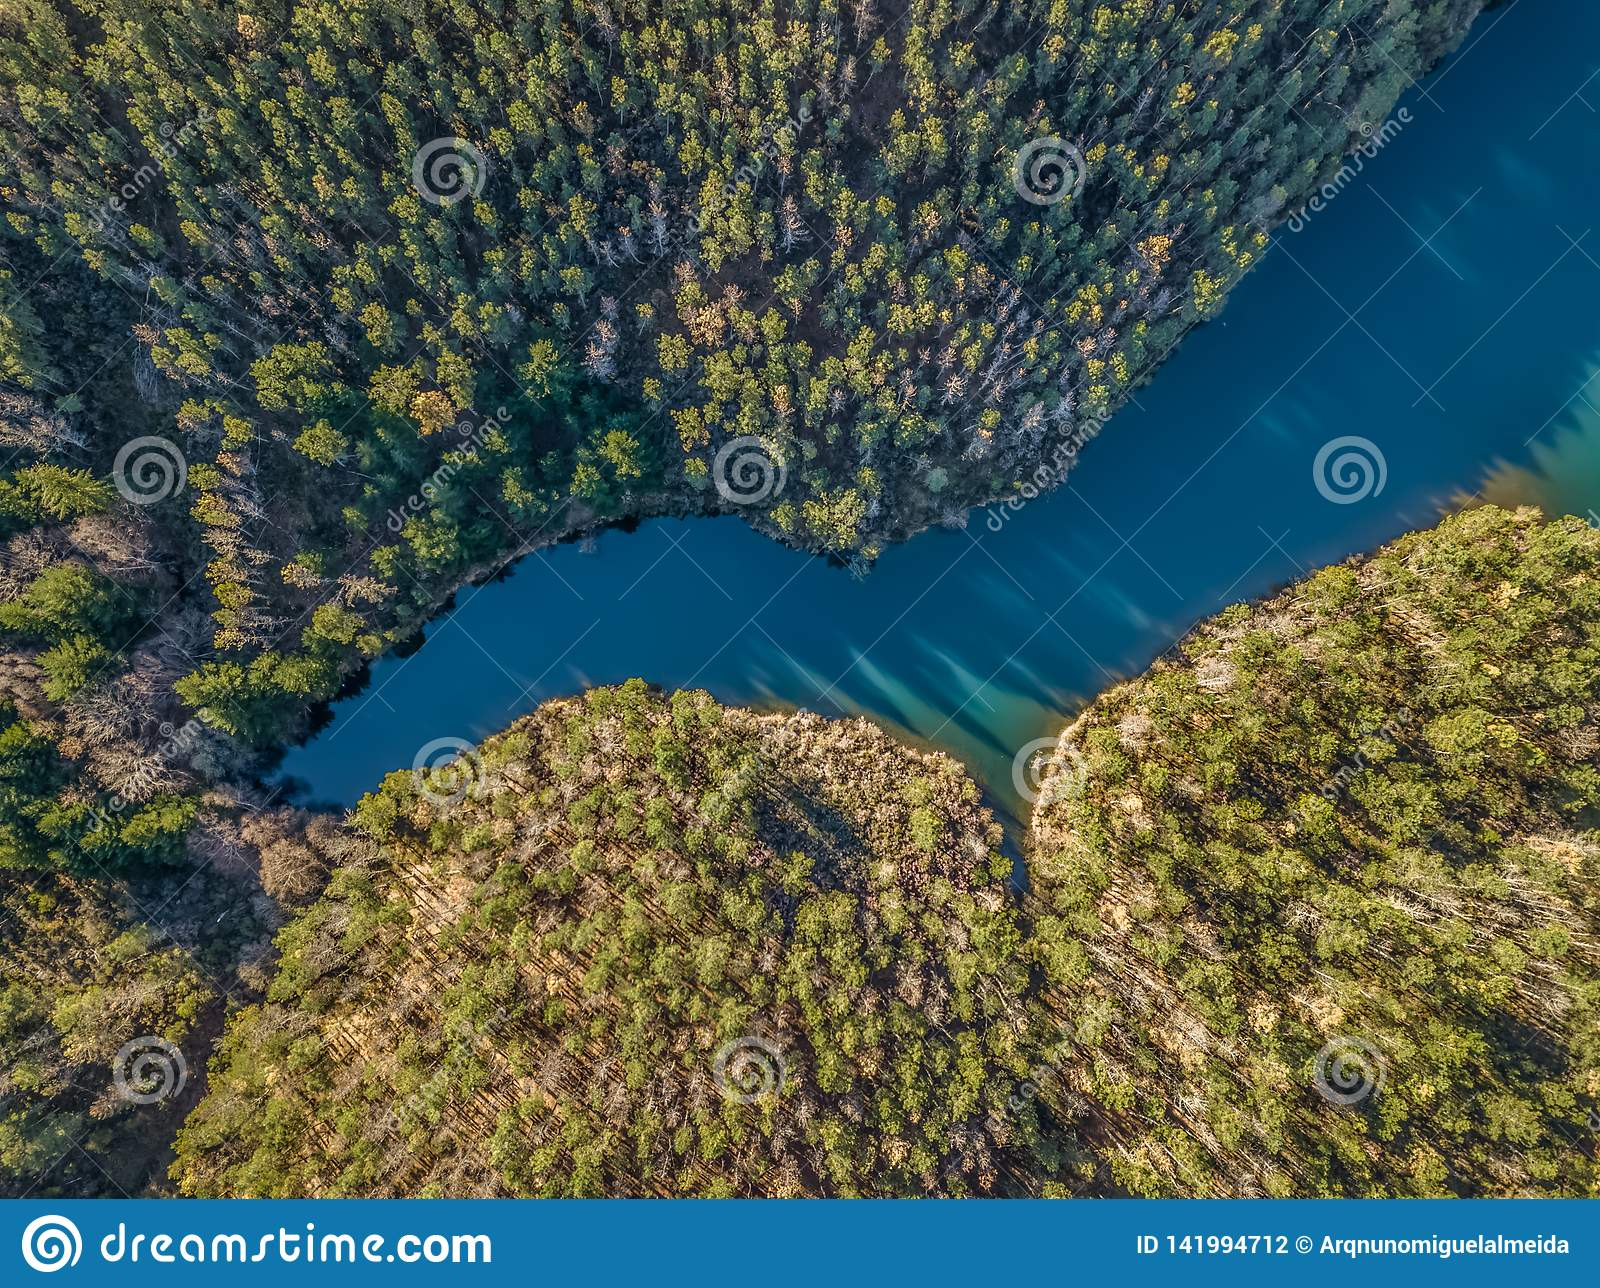 Aerial view of drone, artificial lake and dense forest on the banks